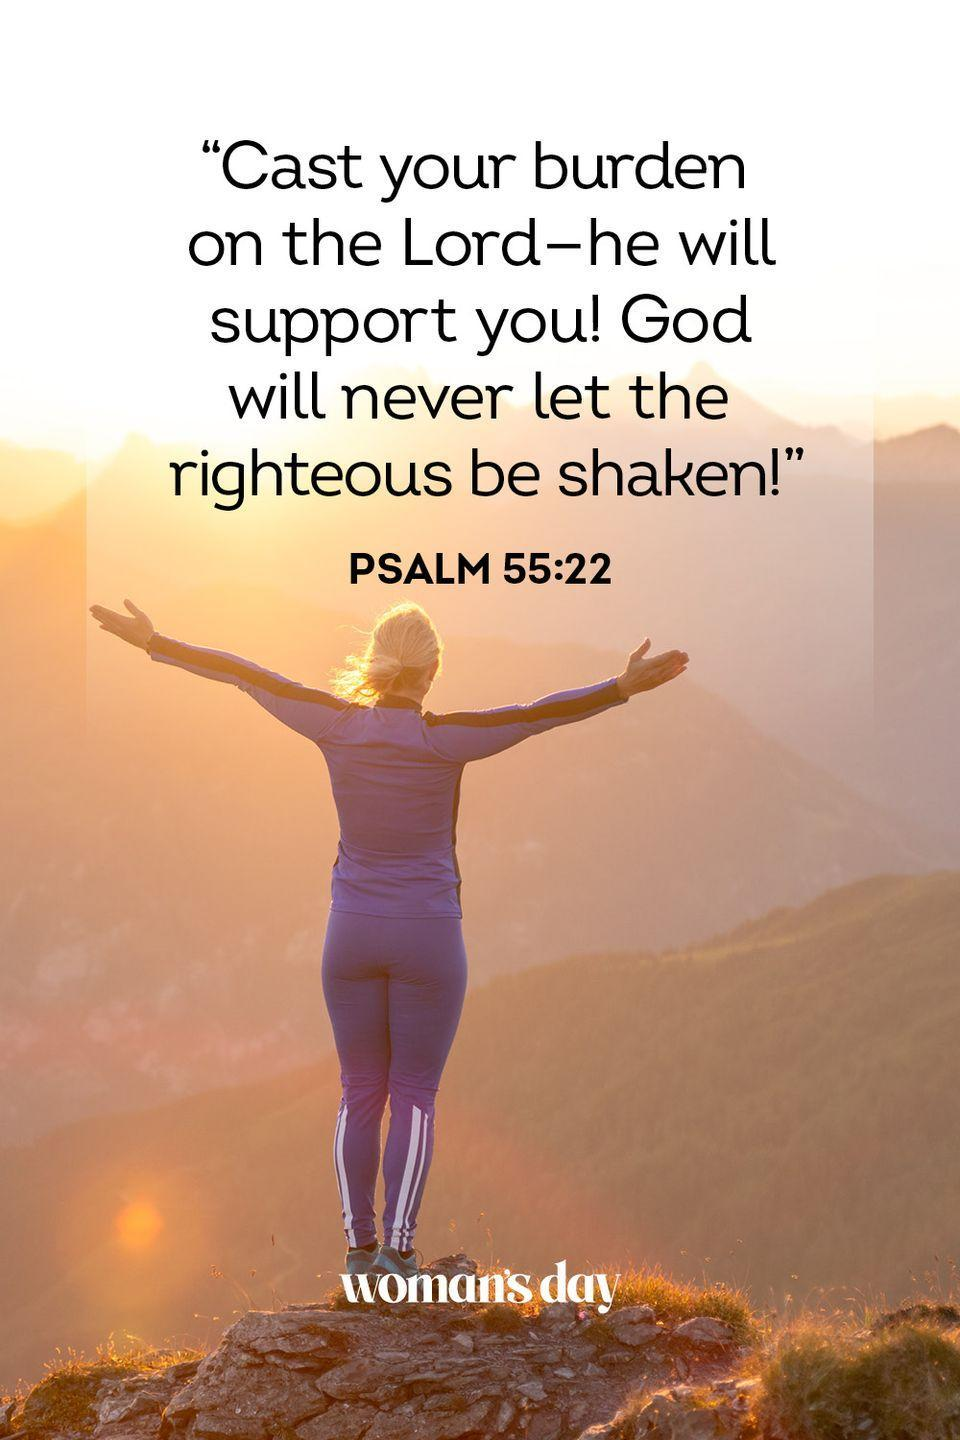 """<p>""""Cast your burden on the Lord — he will support you! God will never let the righteous be shaken!"""" — Psalm 55:22</p><p><strong>The Good News:</strong> When you have troubles in your life, pray to God to help you shoulder that load. He is there to lend support.</p>"""